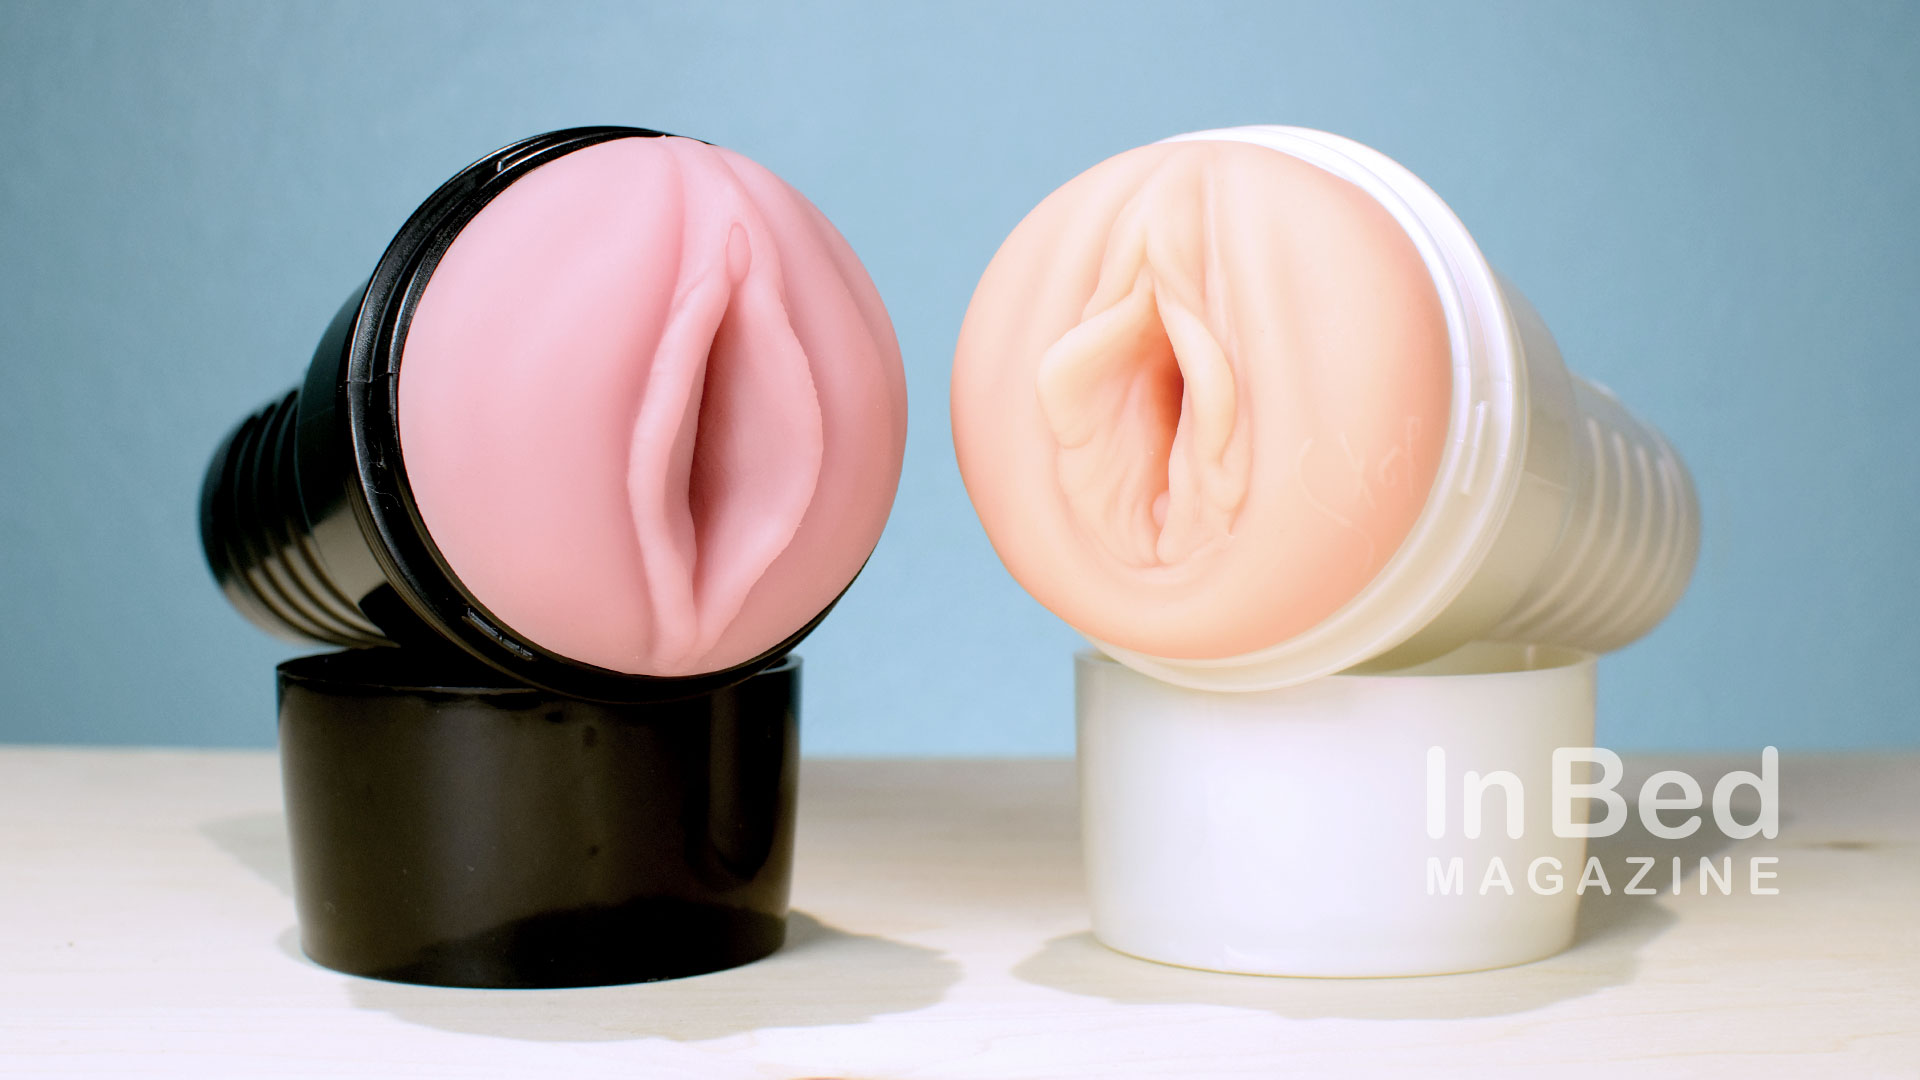 Colors Of The Male Pleasure Products Fleshlight